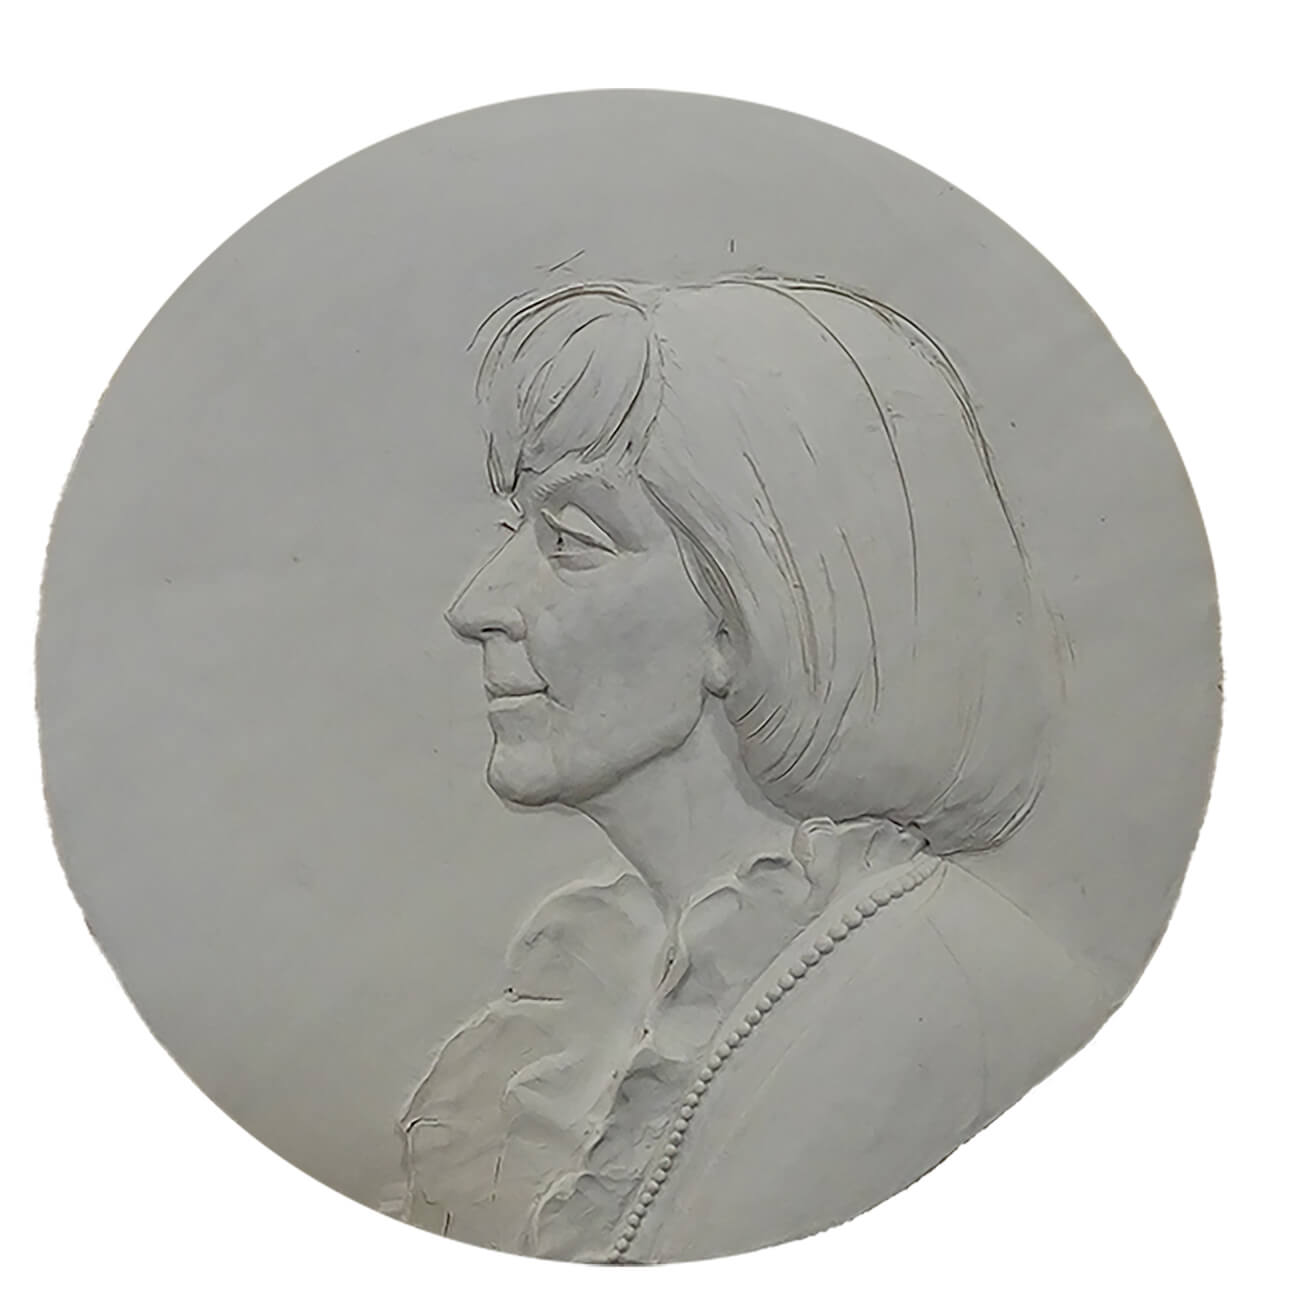 Clay roundel portrait of Catherine A. Doherty